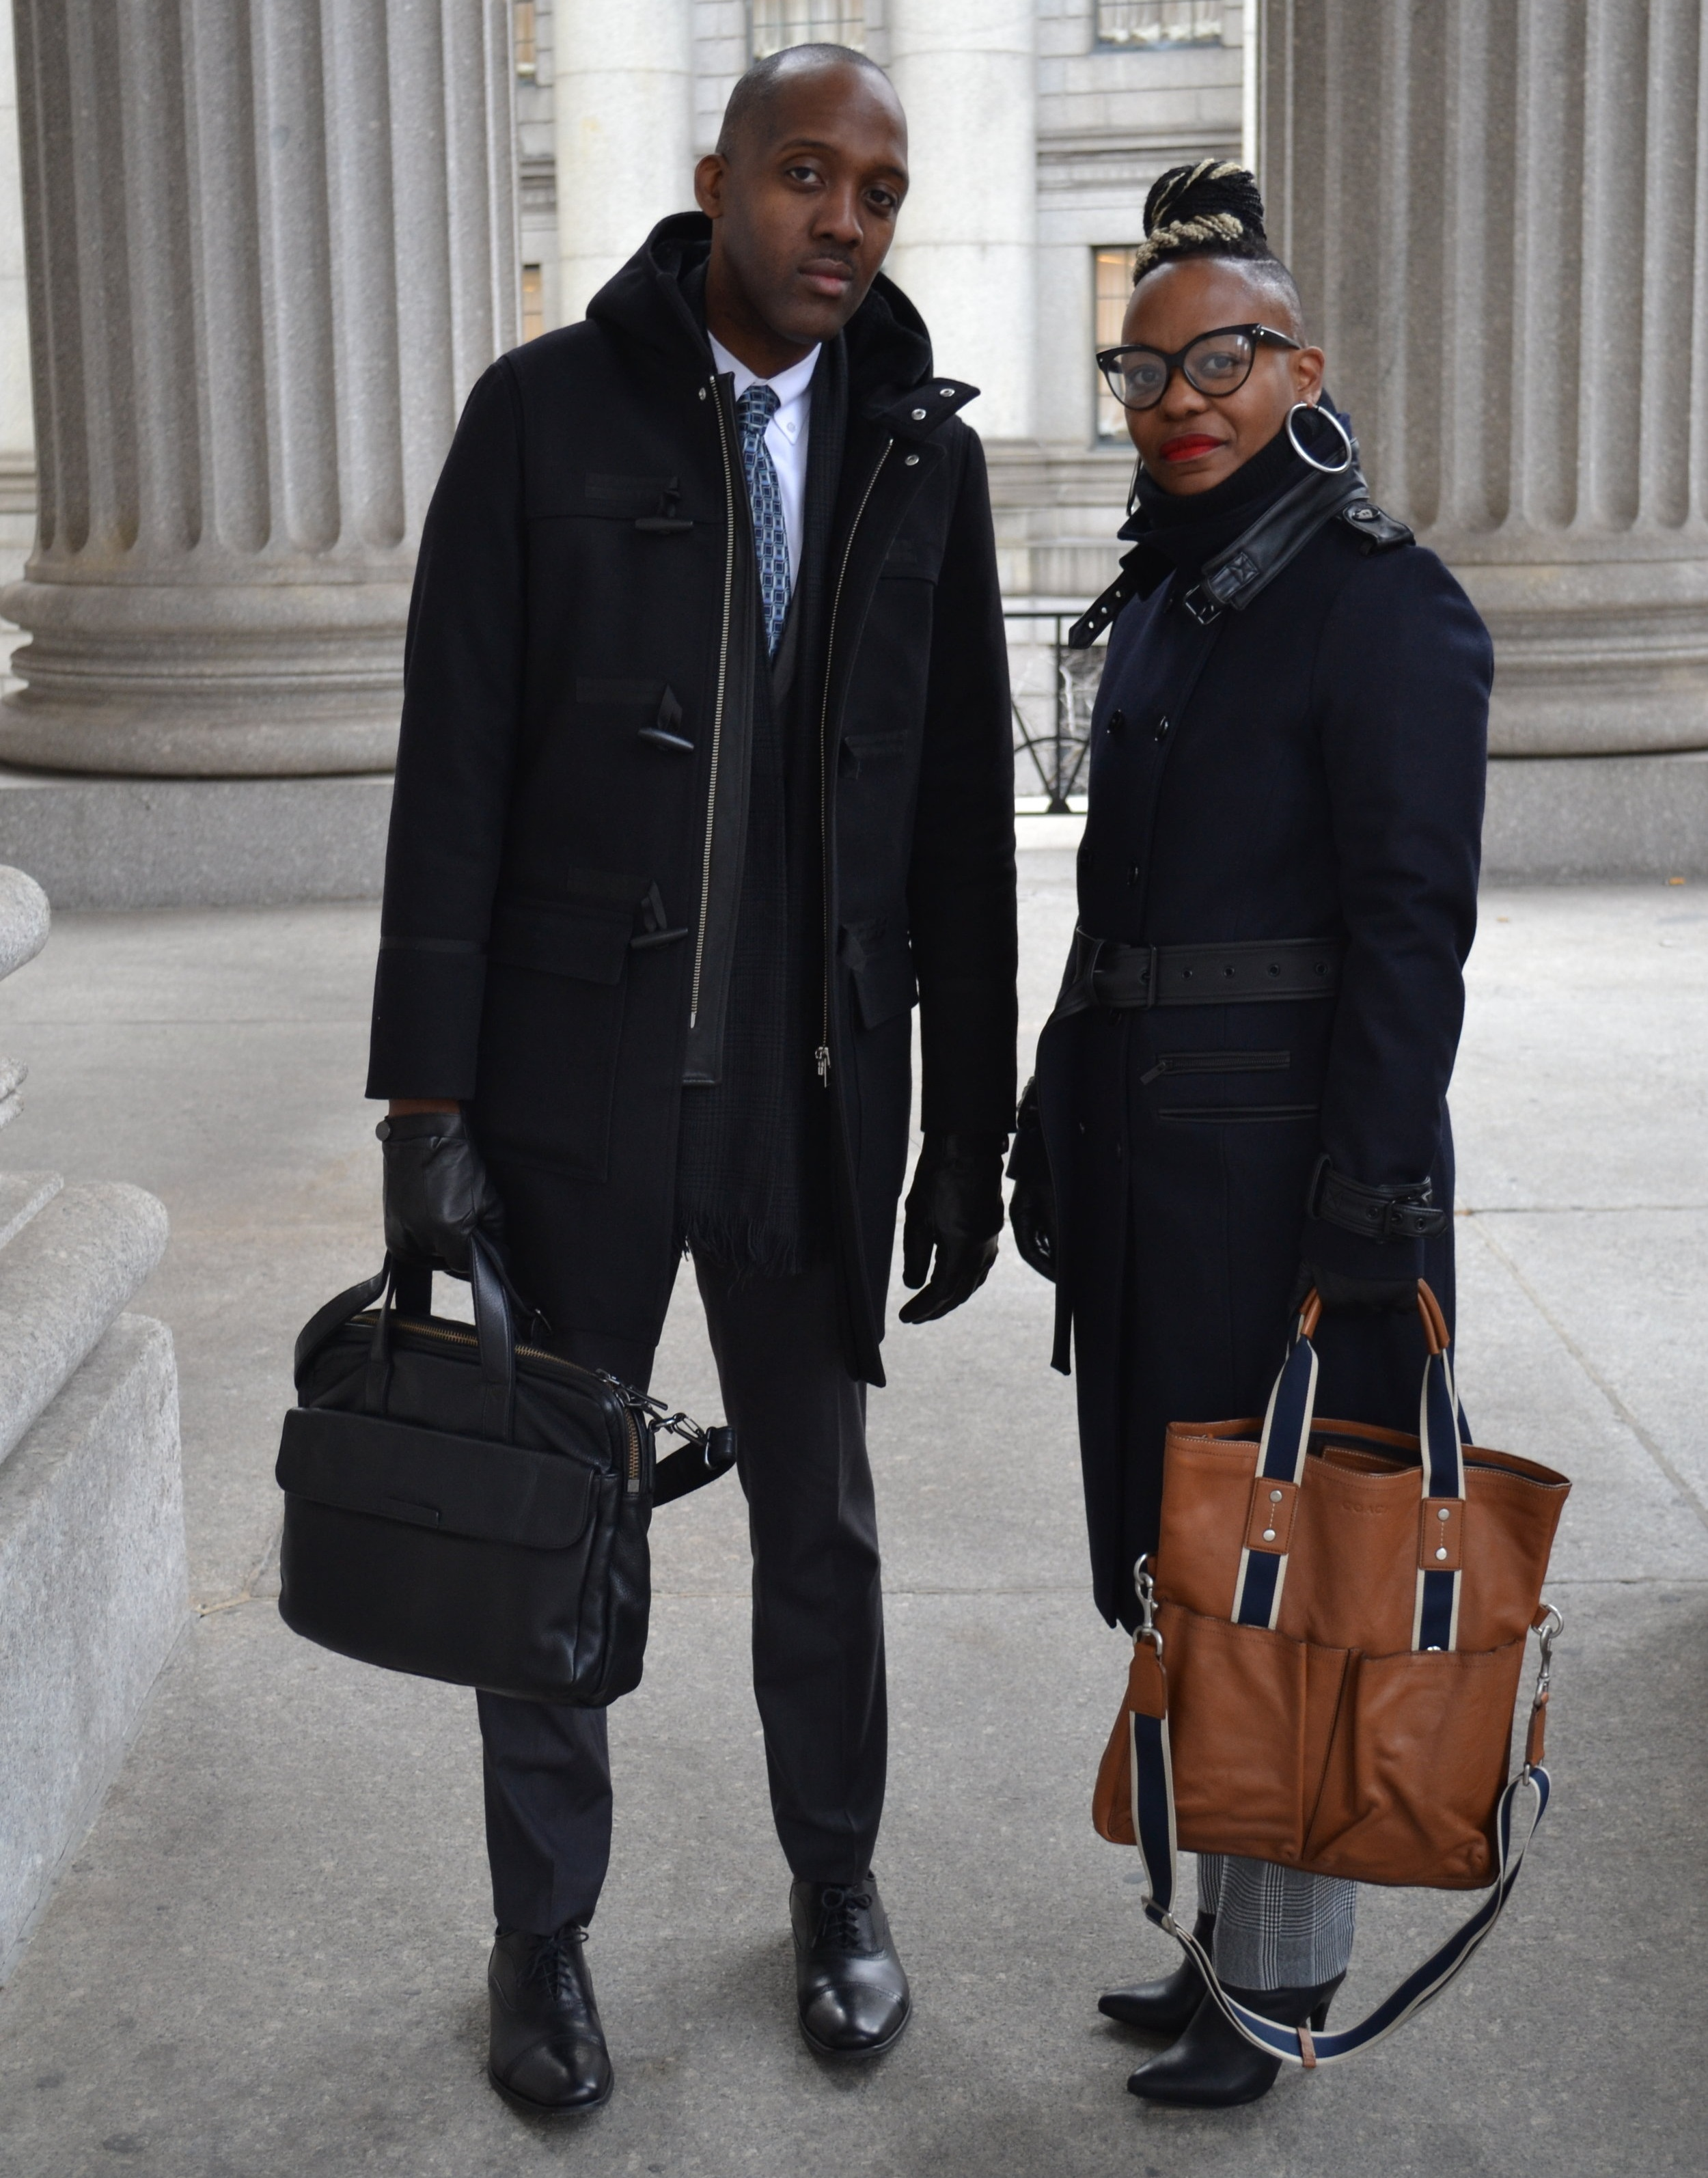 The AFJ Legal Support Unit lead attorneys. From left to right, Kwesi Dash and Tajuana Johnson.